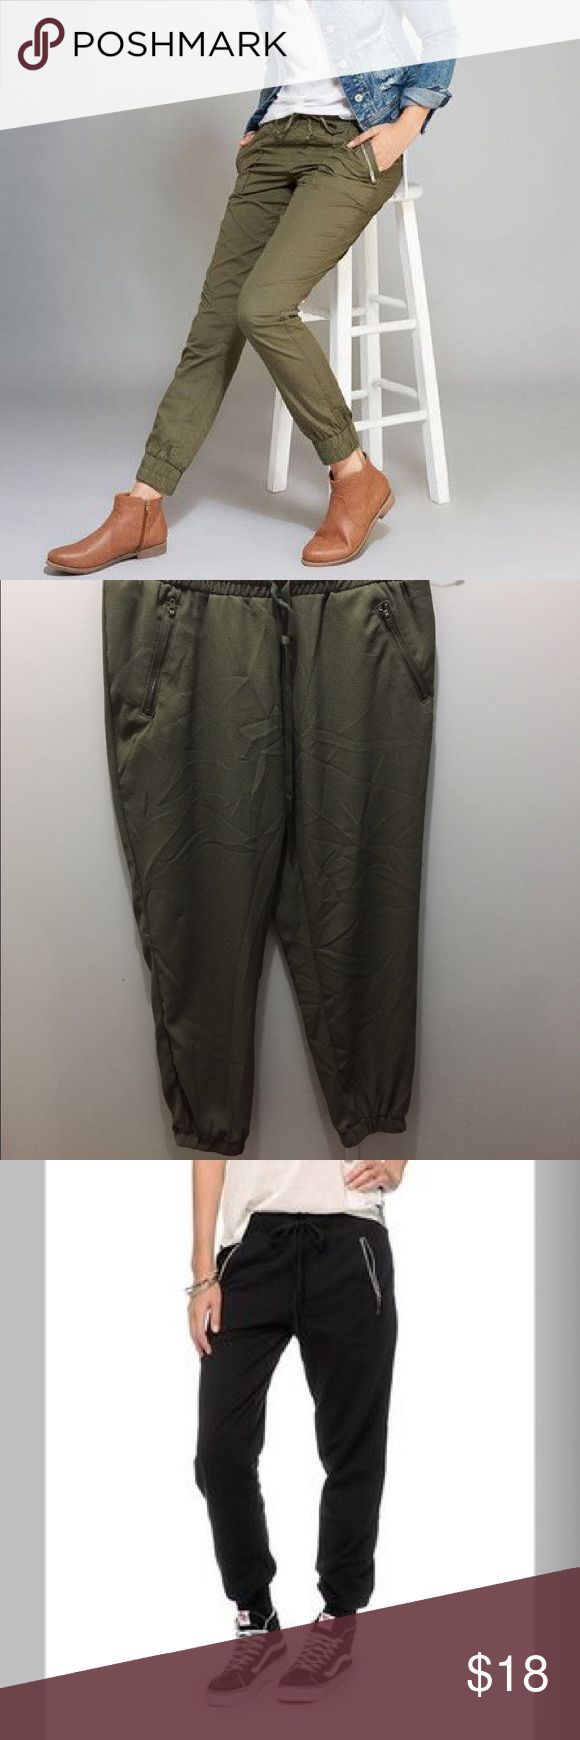 Ladies joggers 2 available! Make your offer quick! Mossimo ladies joggers. Great condition. Both have never been worn. Zip up pockets. Black size large and olive green size extra small available. Hurry!! If you don't like the price make your offer before they're gone!! Mossimo Pants